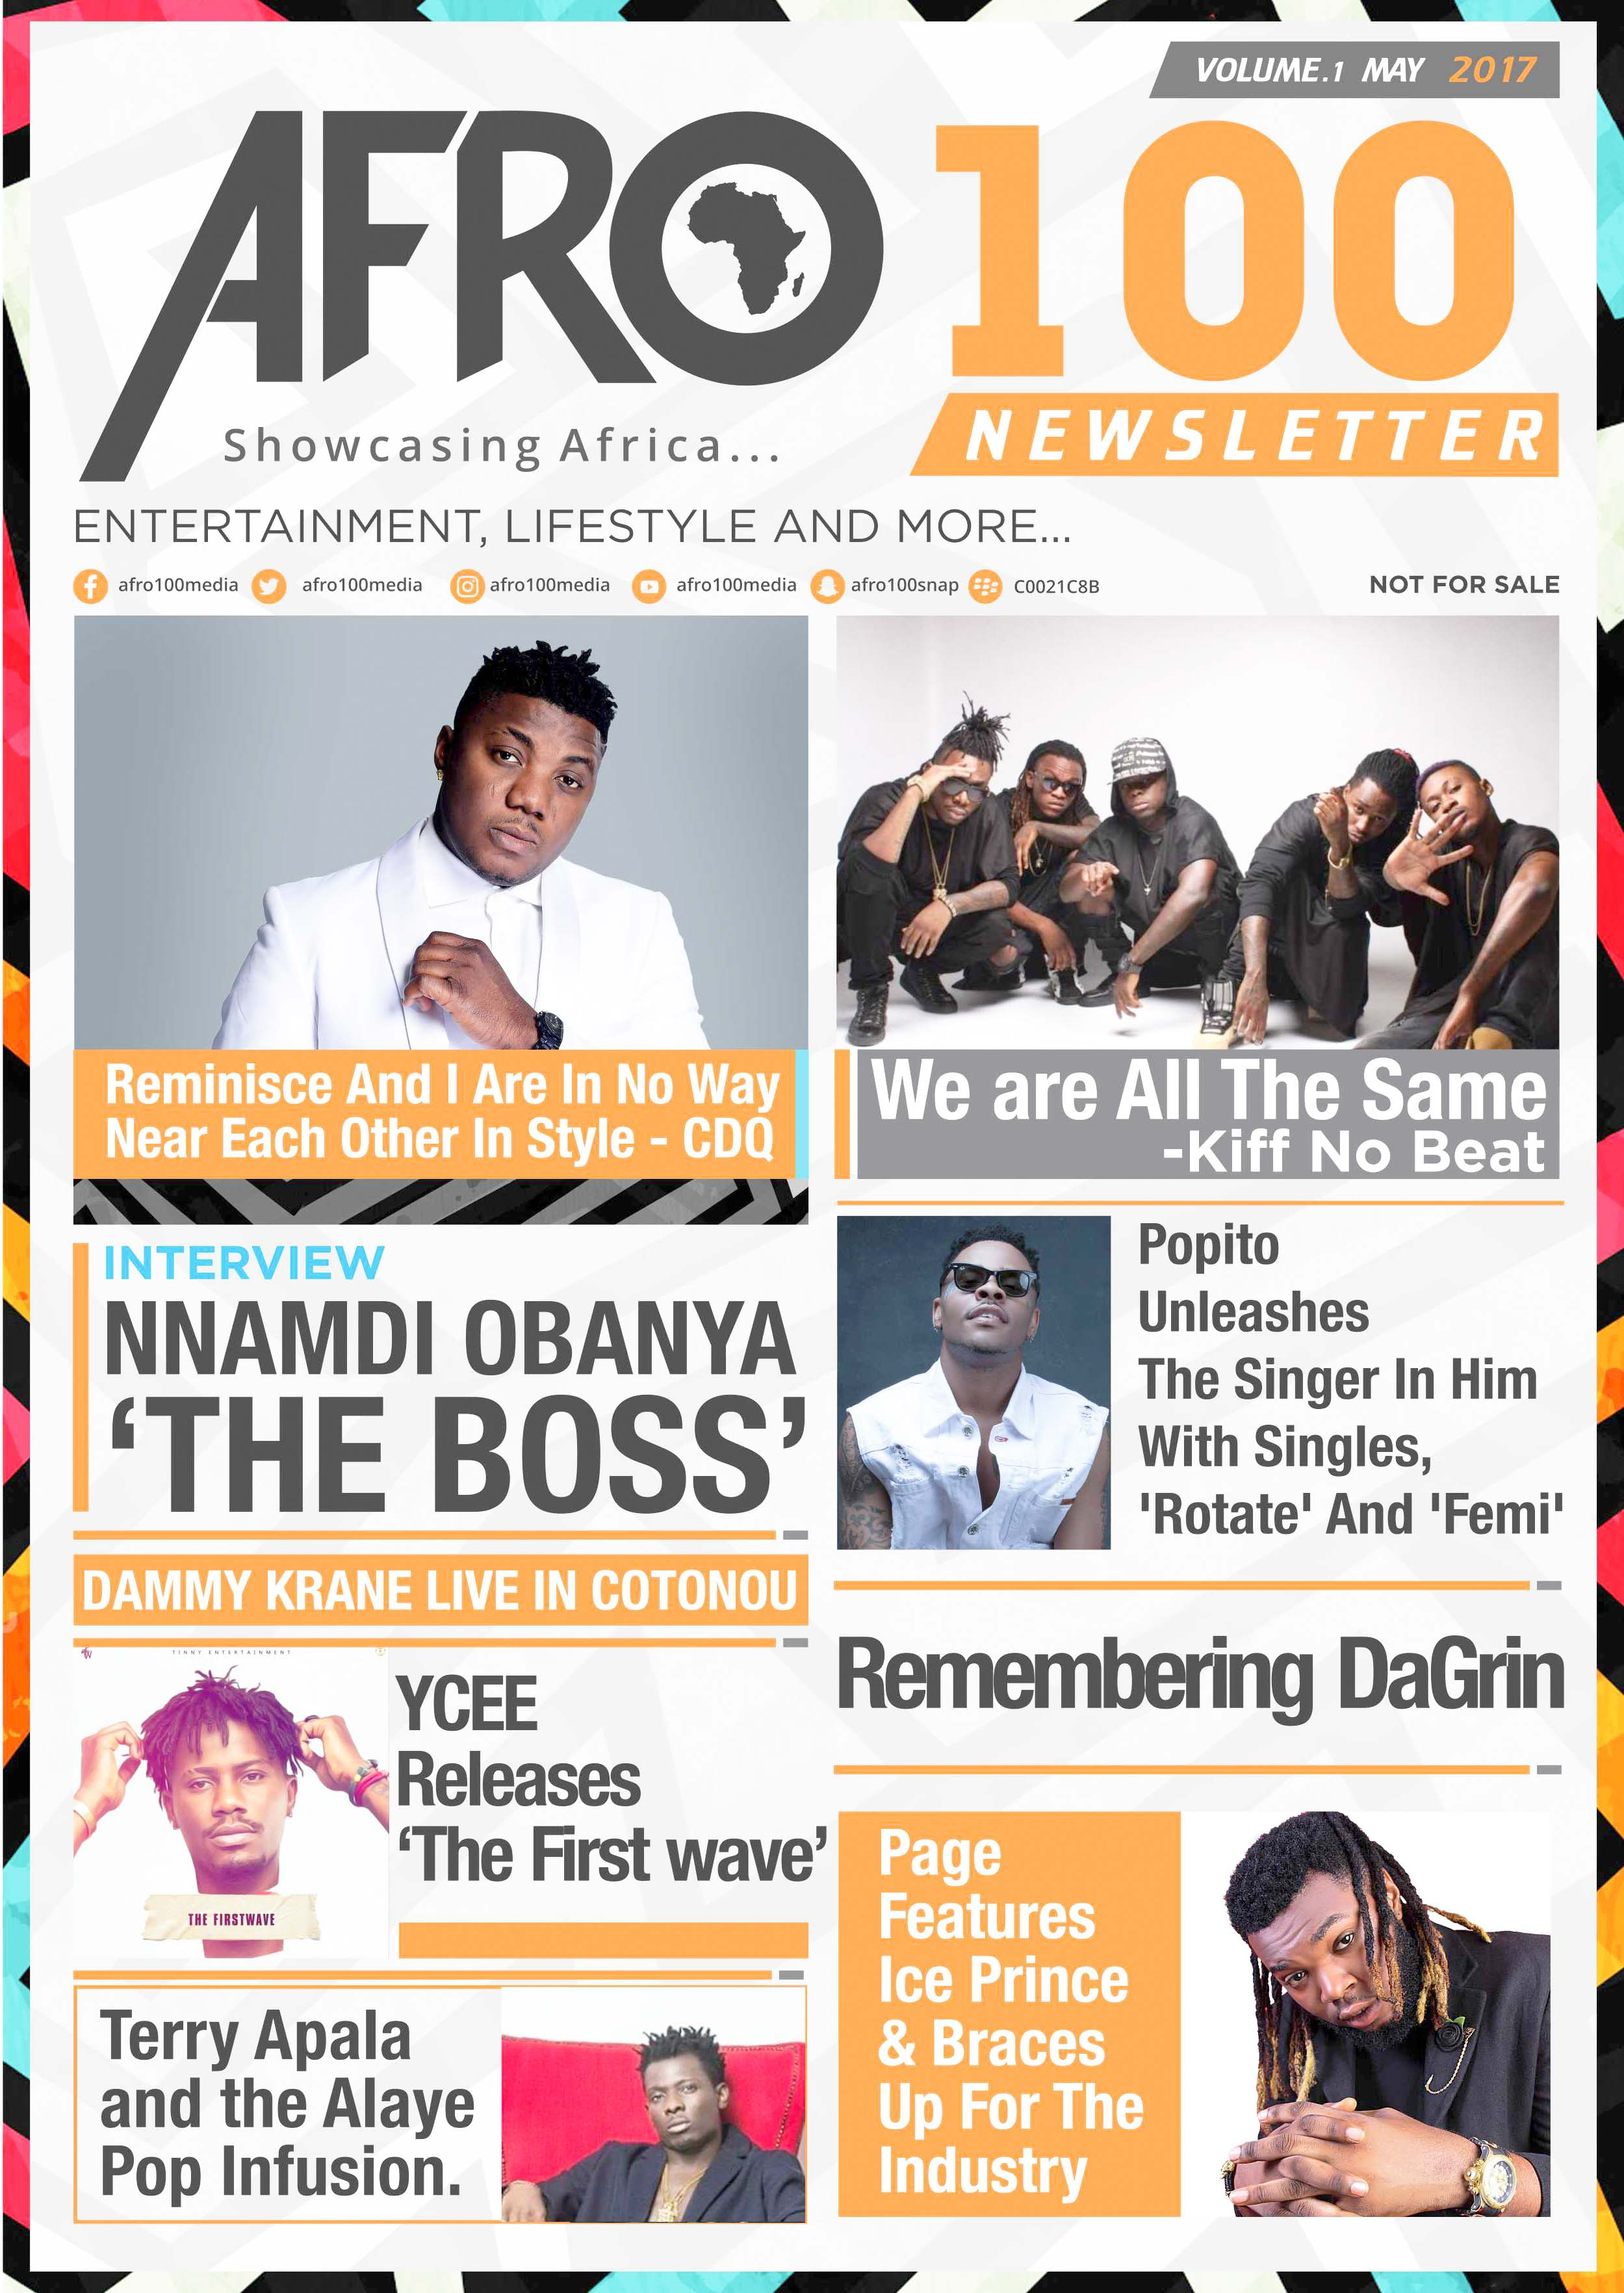 Afro100 newsletter front cover